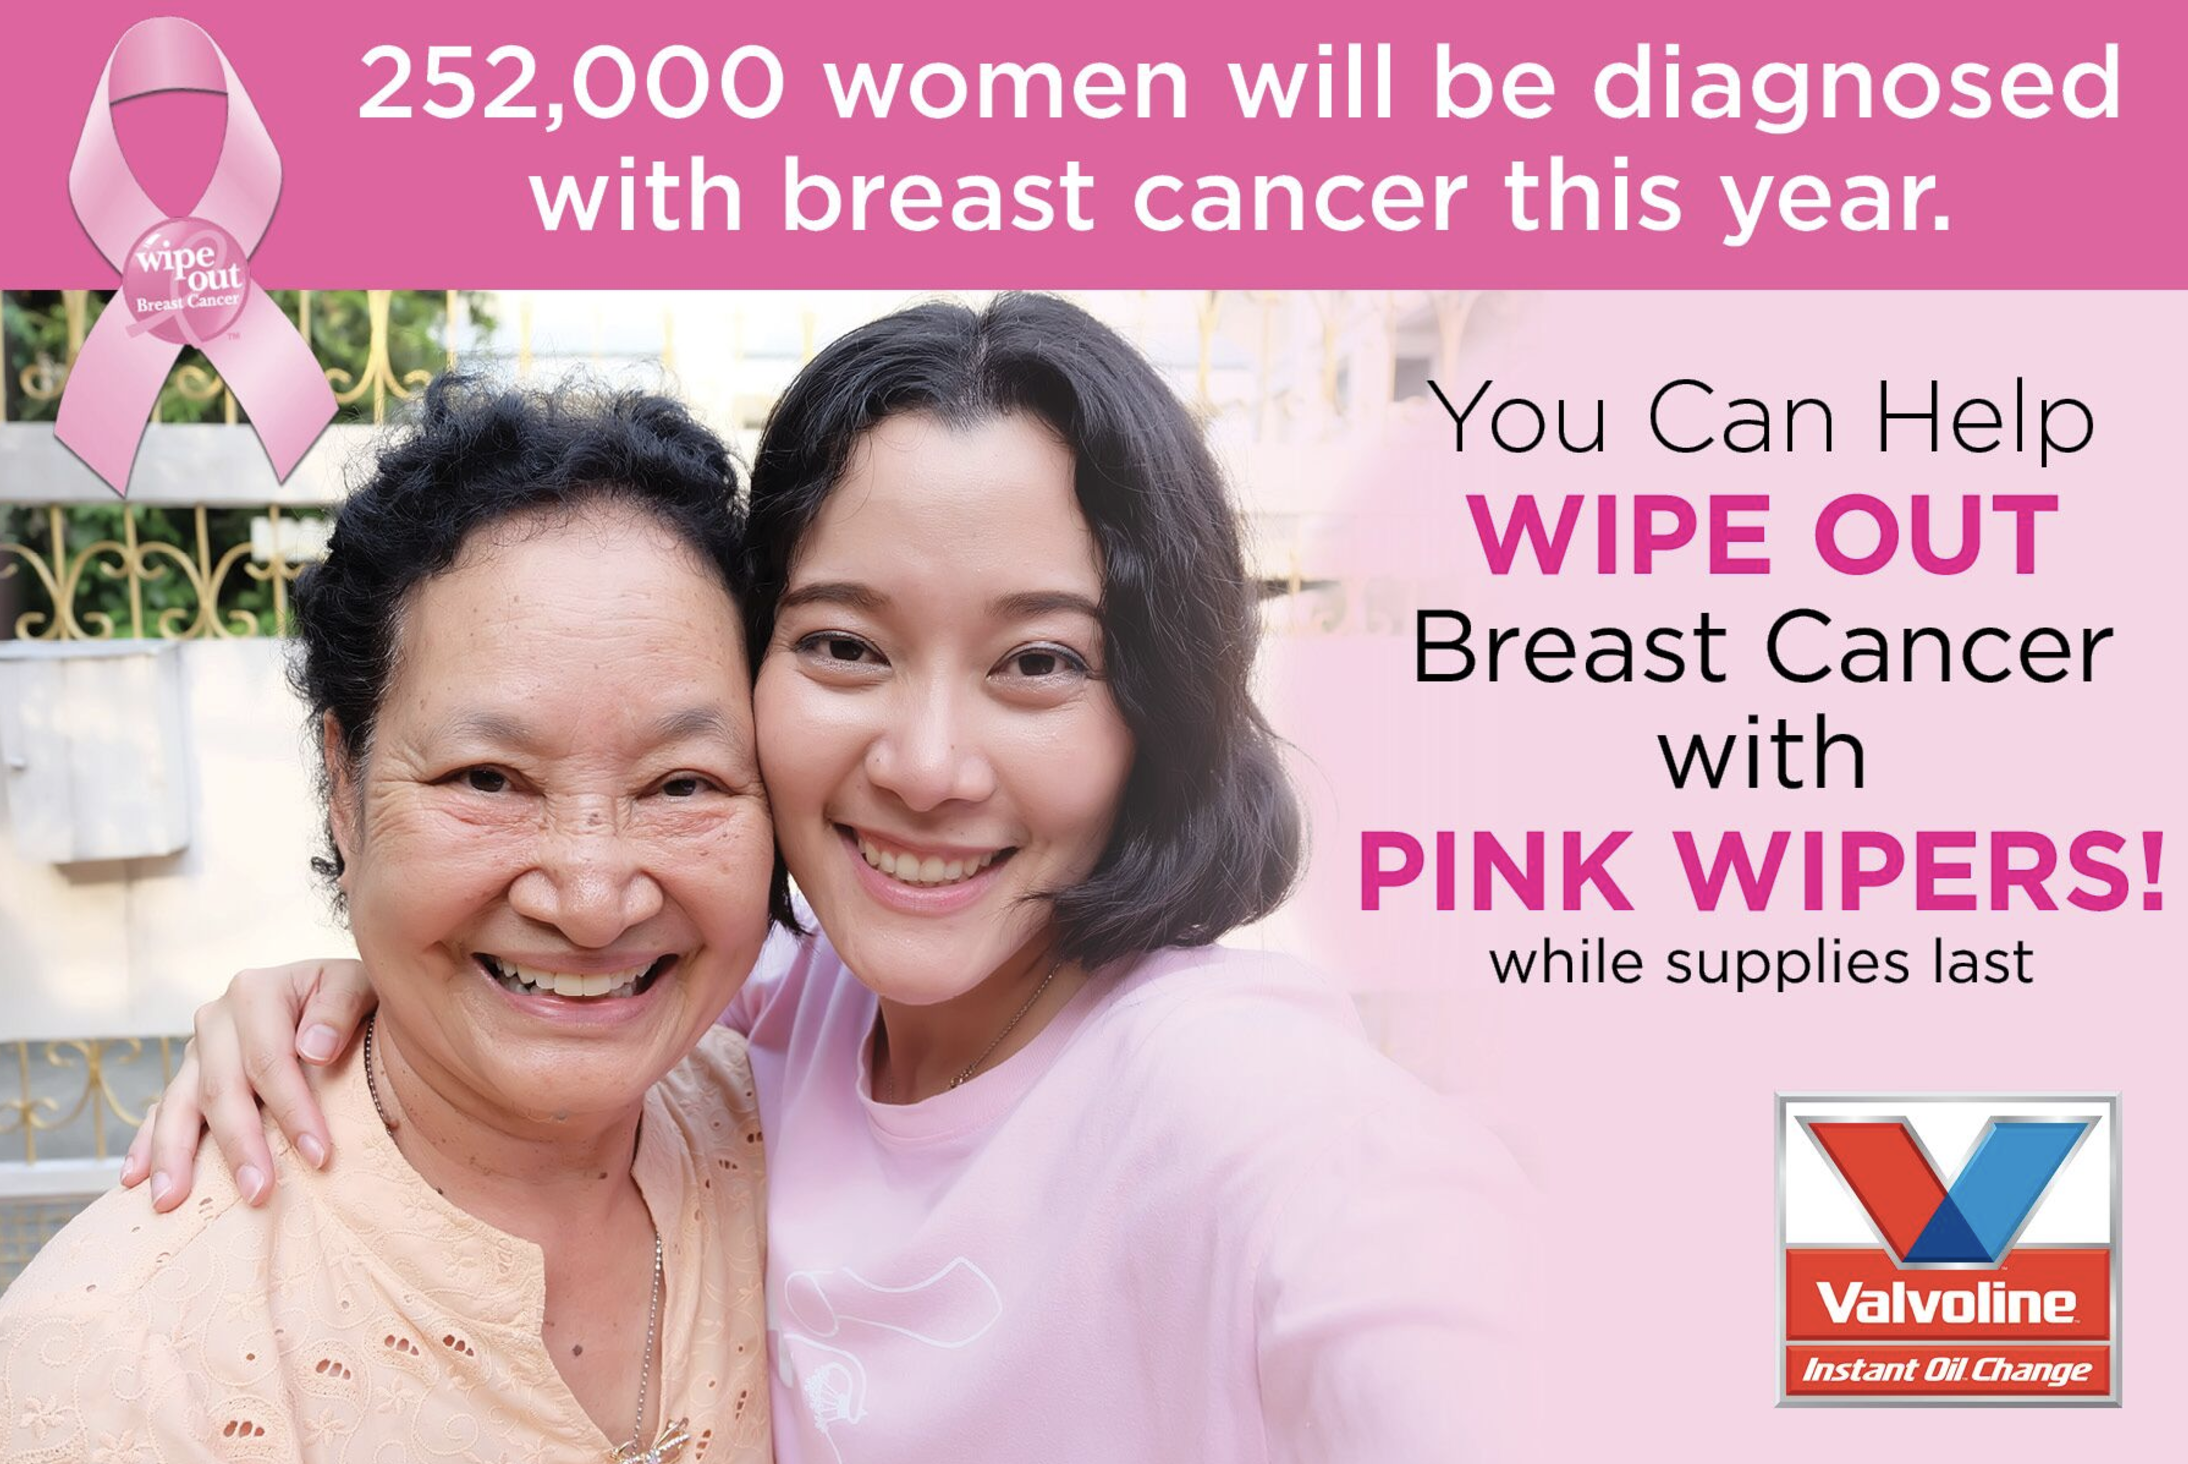 Wipe out breast cancer with AutoTex PINK Windshield Wipers for Breast Cancer Awareness from Valvoline Instant Oil Change!